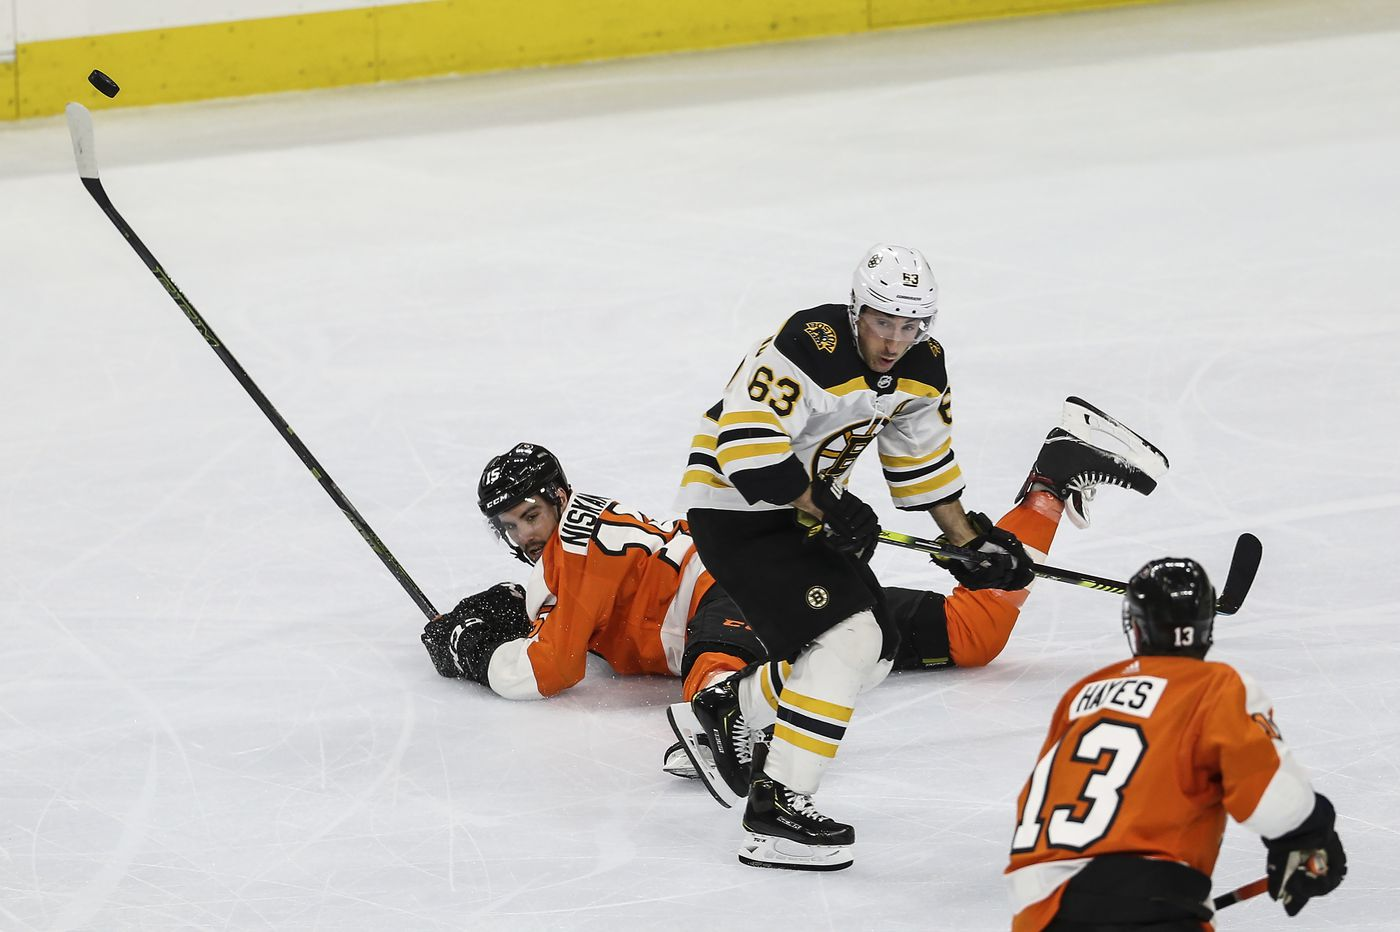 Flyers fans thumbed their noses at coronavirus and fear Tuesday night. Here's hoping they stay safe. | Mike Sielski